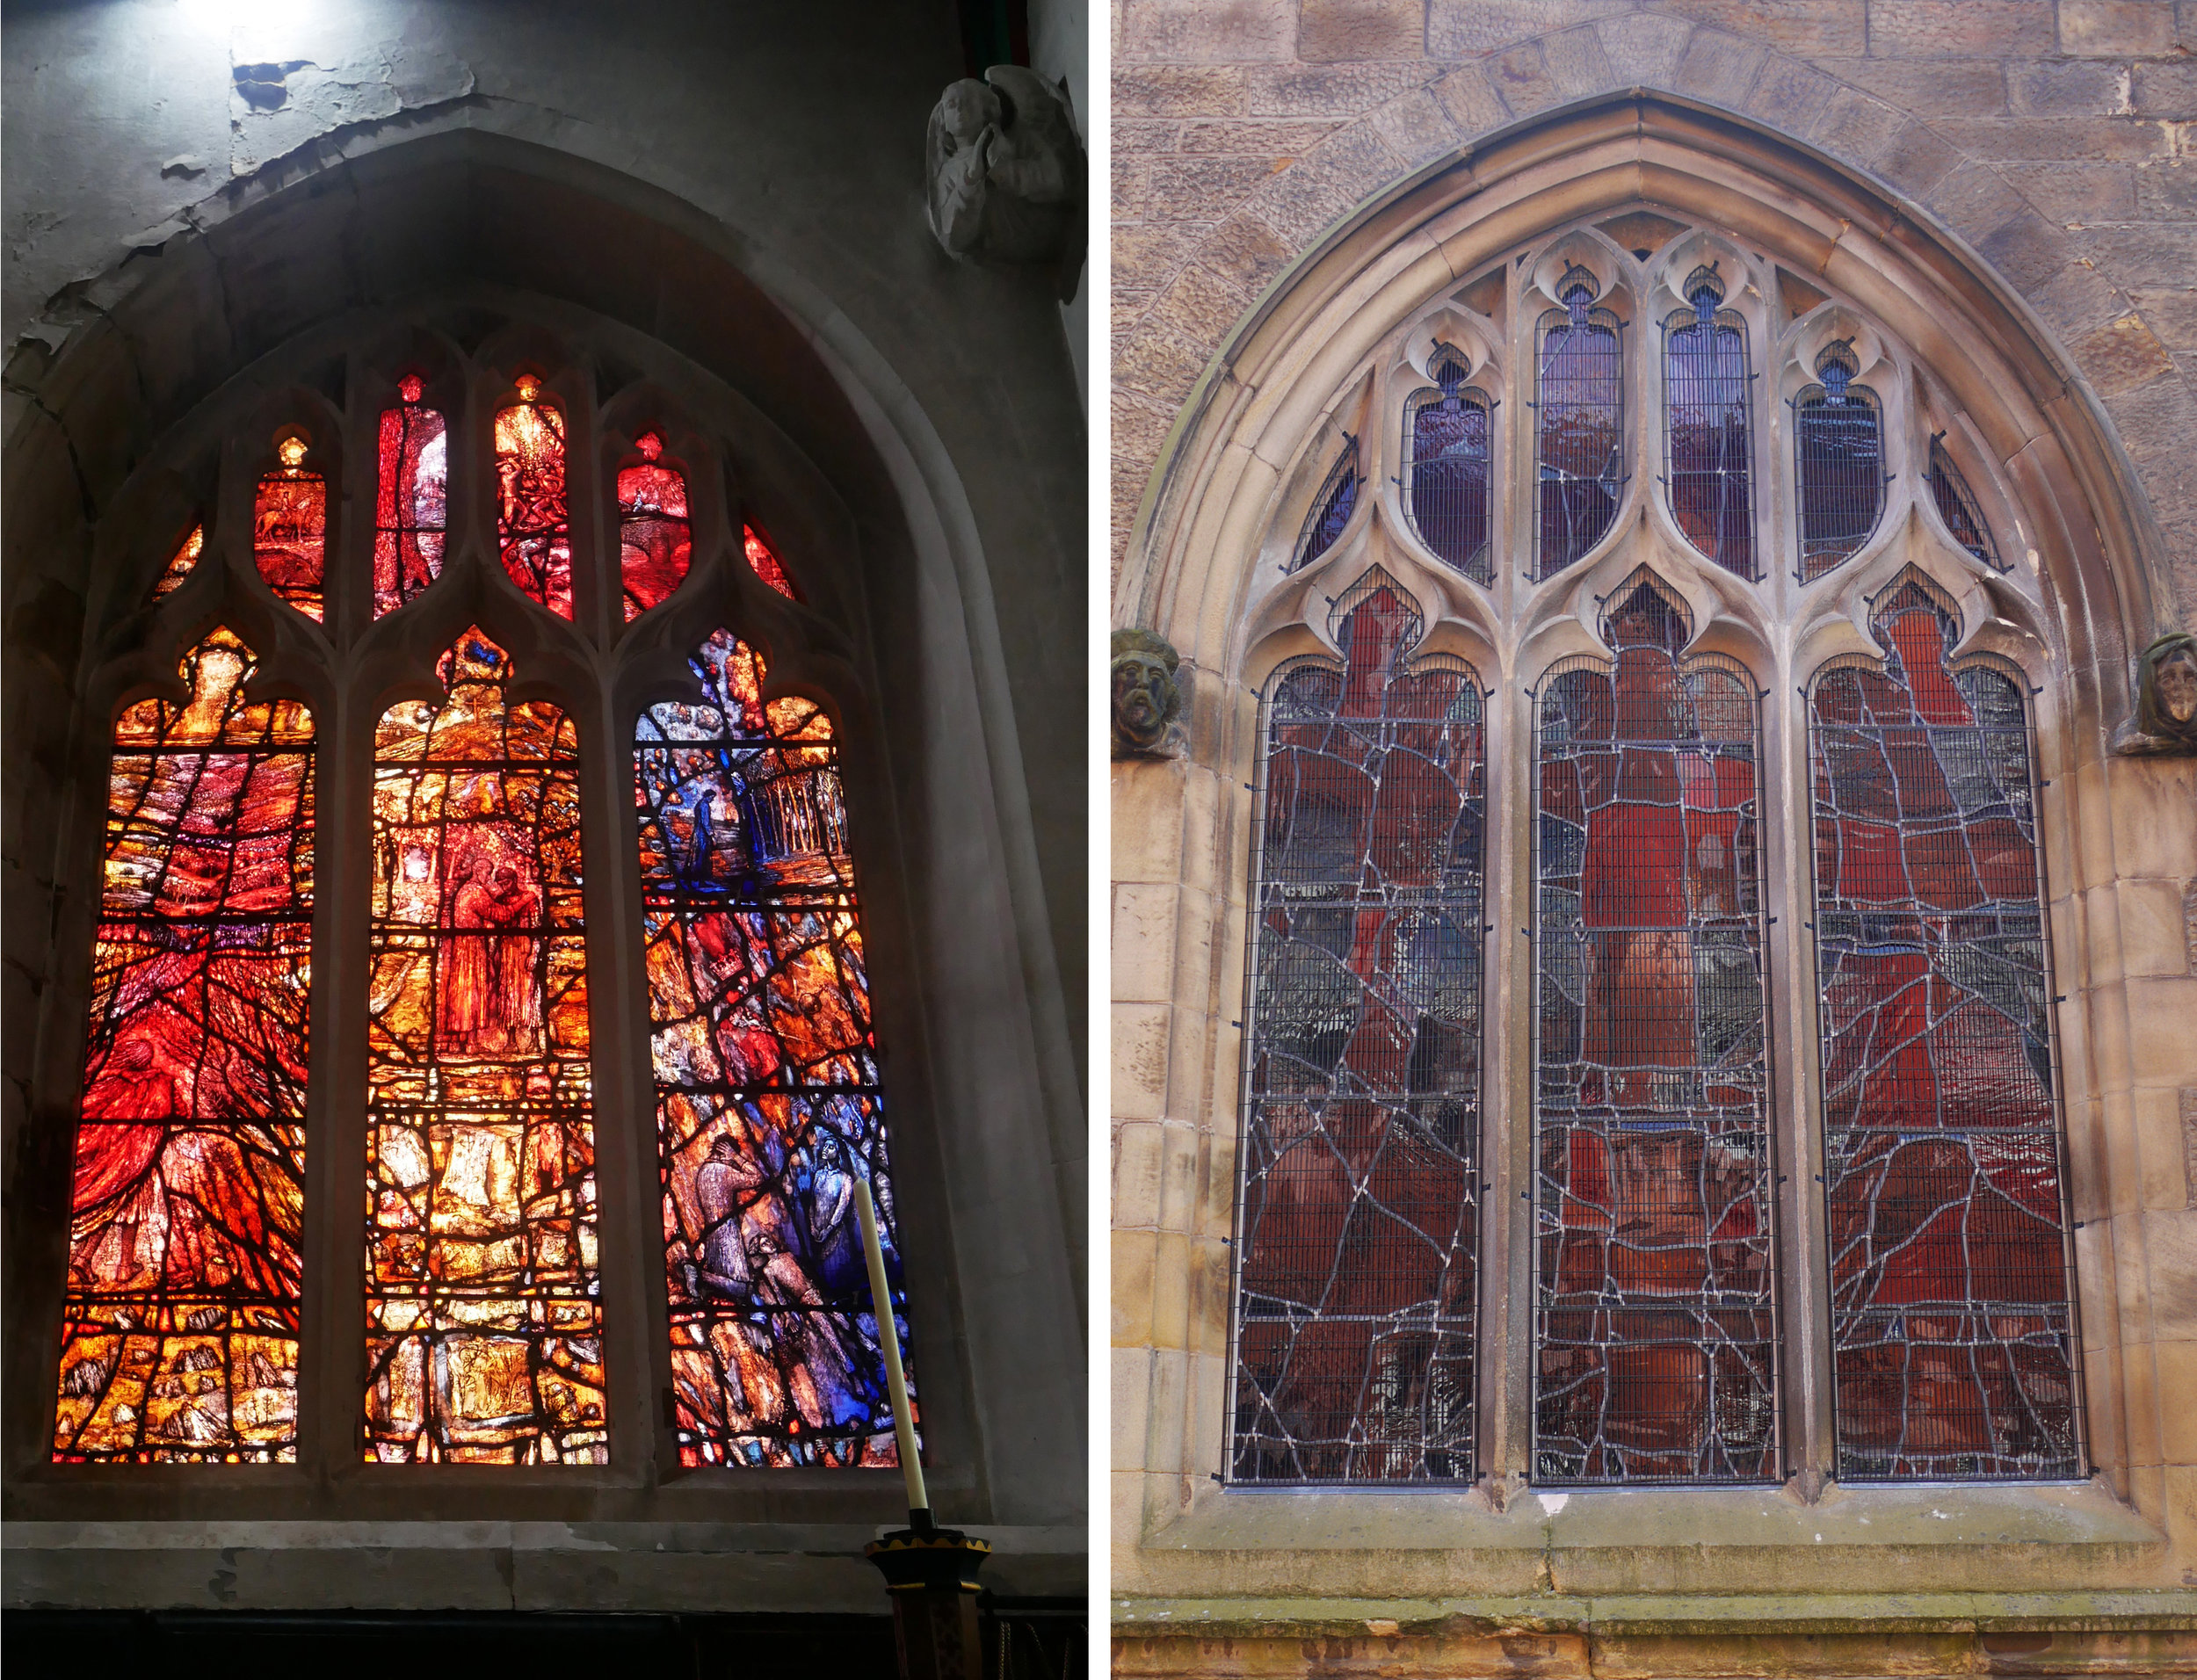 One of two Tom Denny 2016 windows in Leicester Cathedral from the inside and the outside.